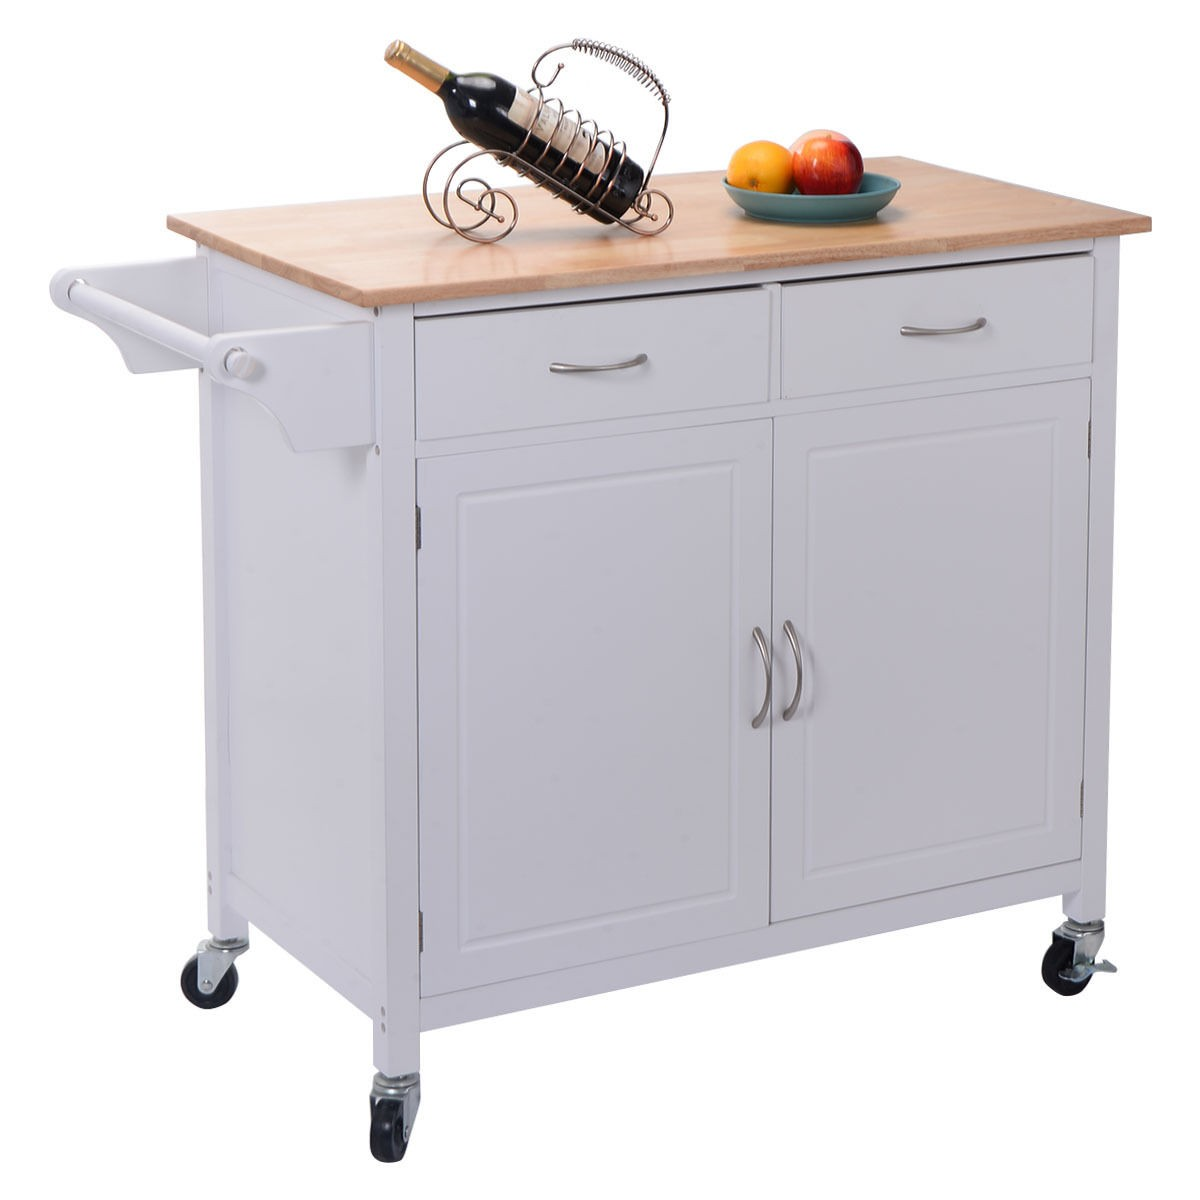 Us portable kitchen rolling cart wood island serving for Kitchen utility cart